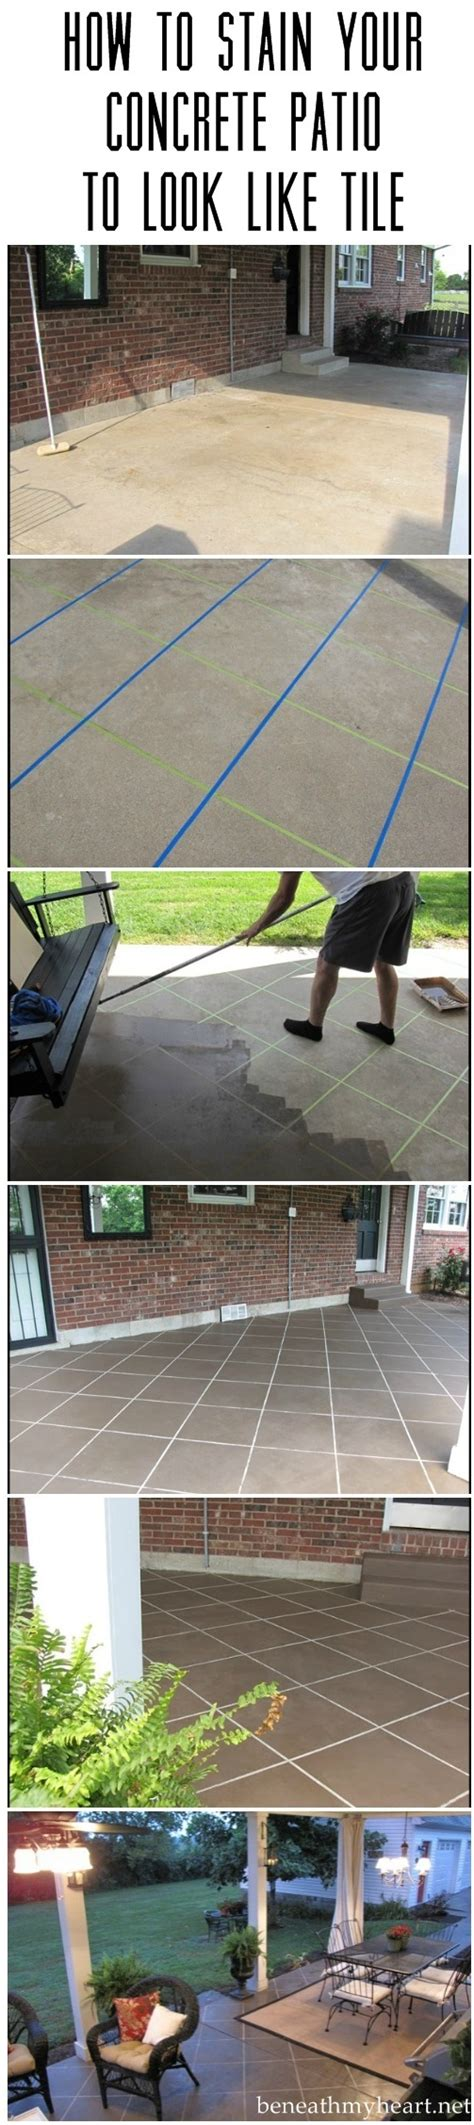 how to tile concrete how to stain your concrete patio to look like tile ikea